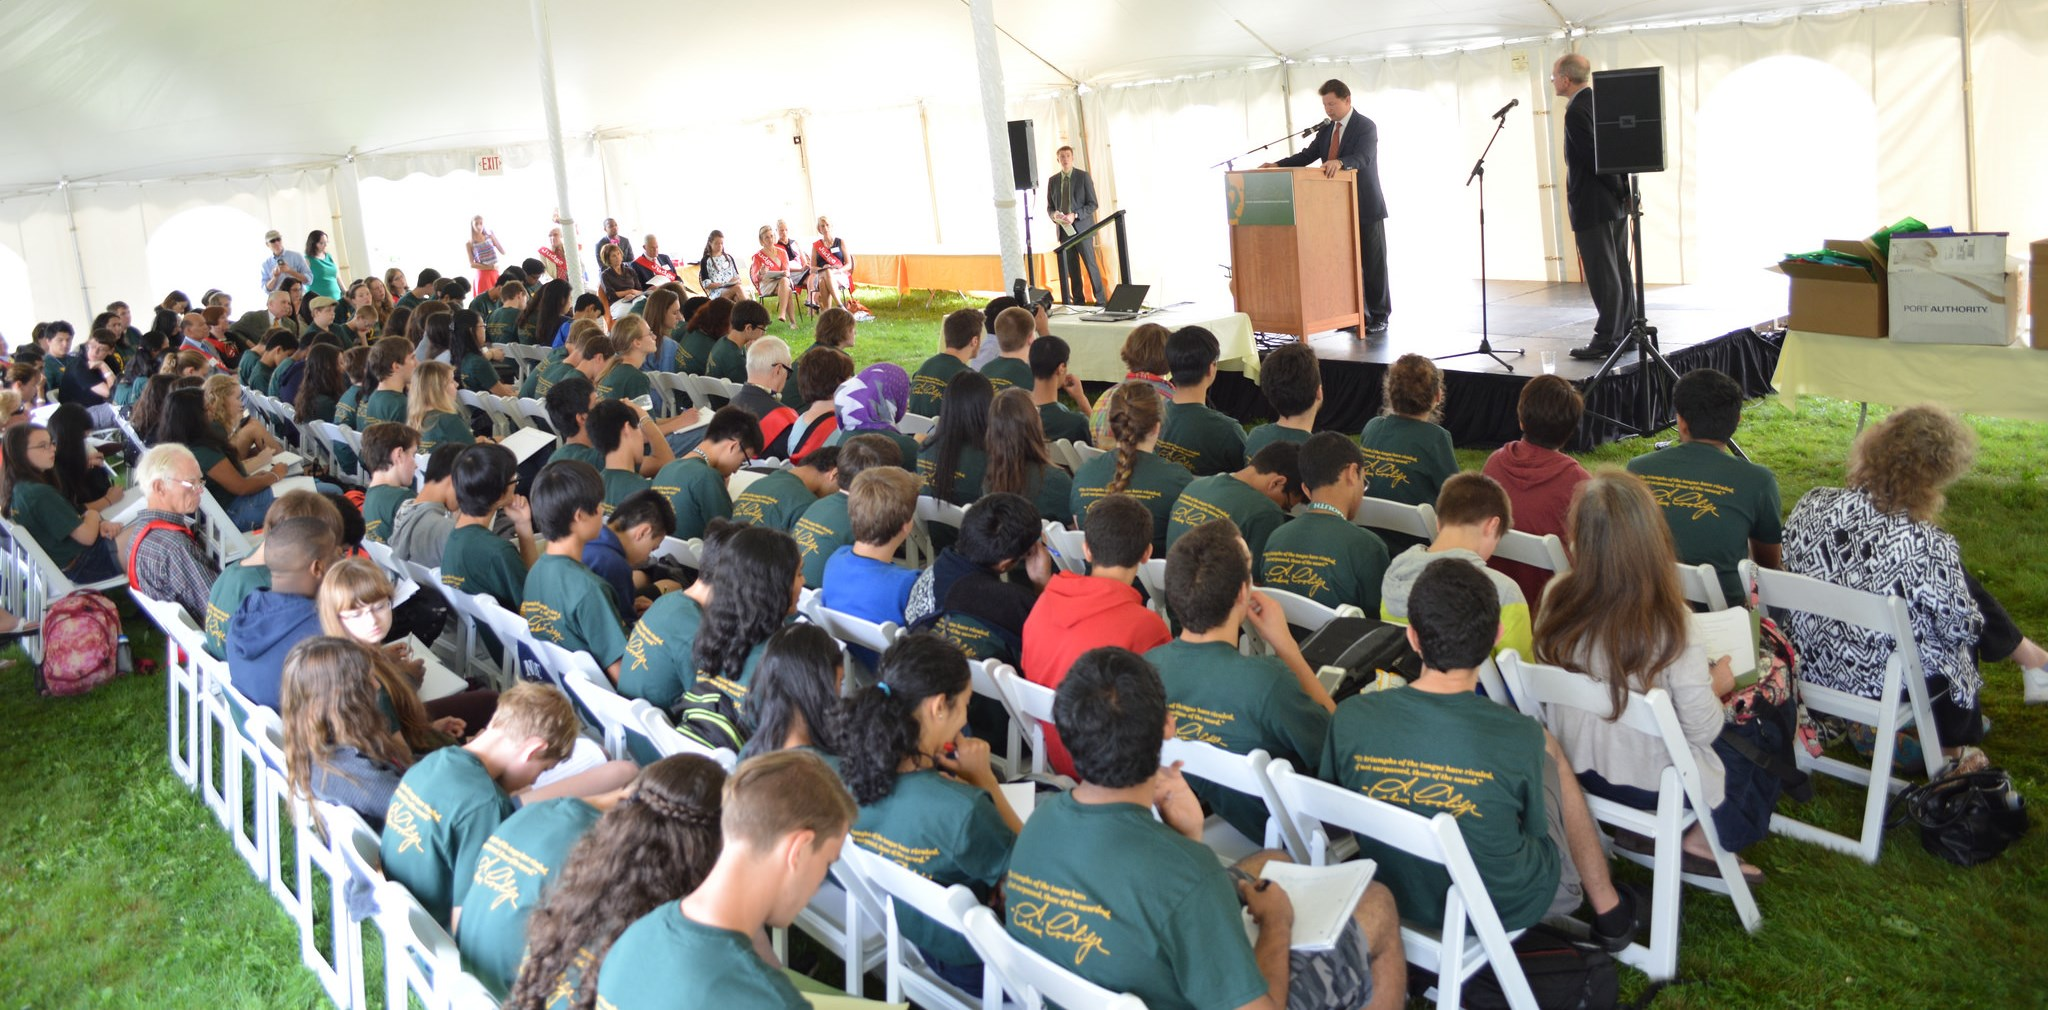 Students in big tent